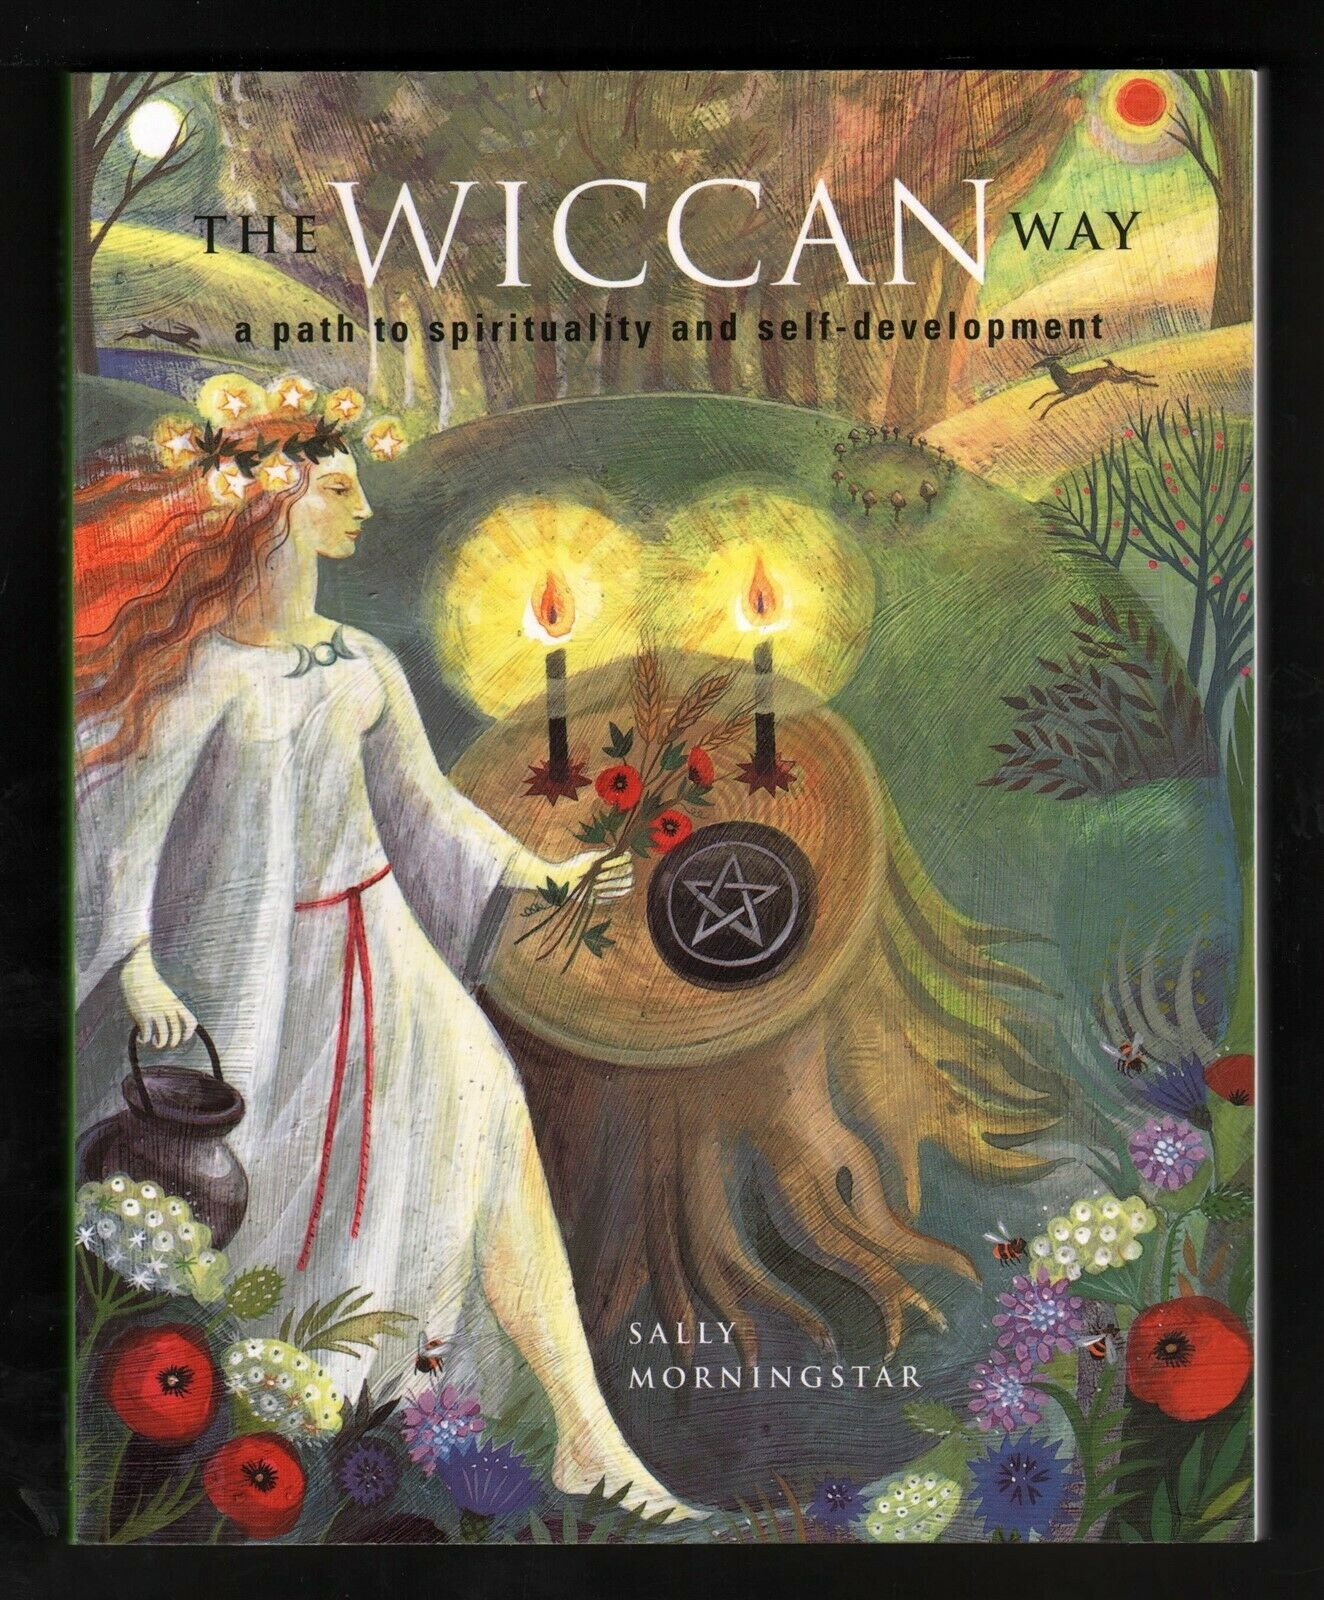 The Wiccan Way - Sally Morningstar - Path to Spirituality & Self-Development NEW 4